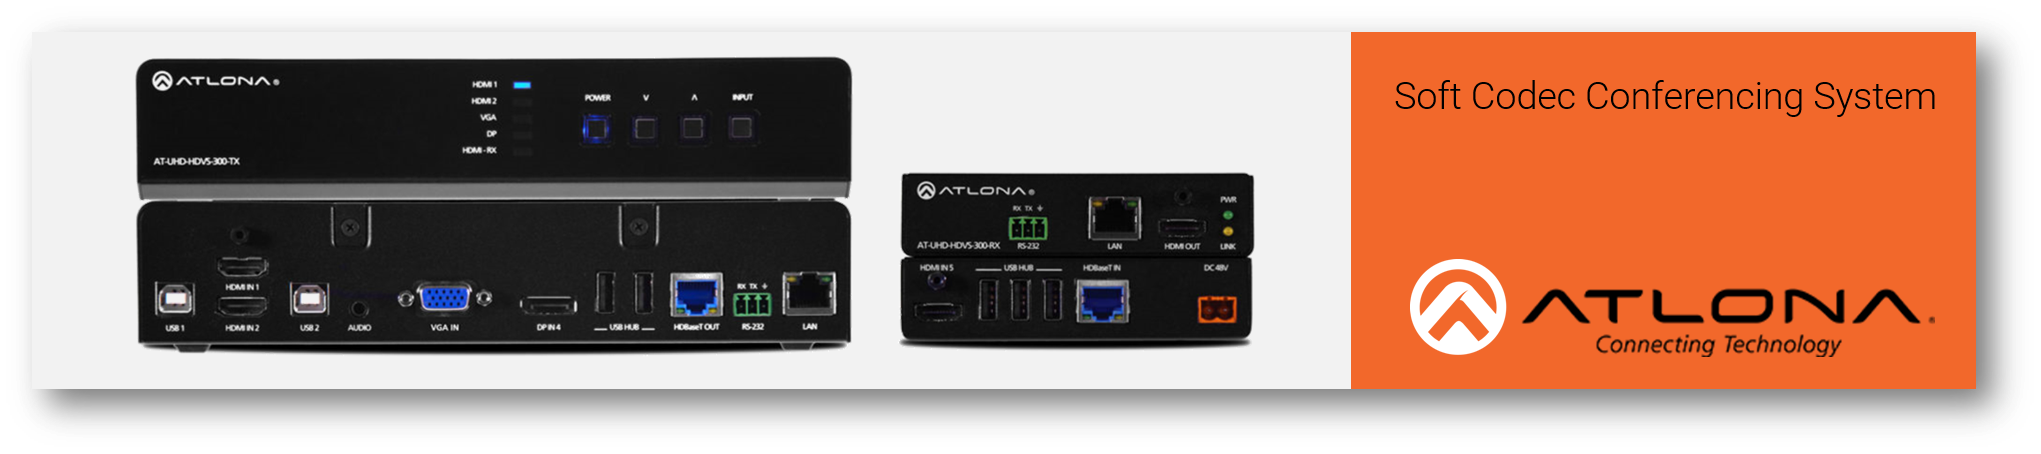 Atlona Softcodec Conferencing System